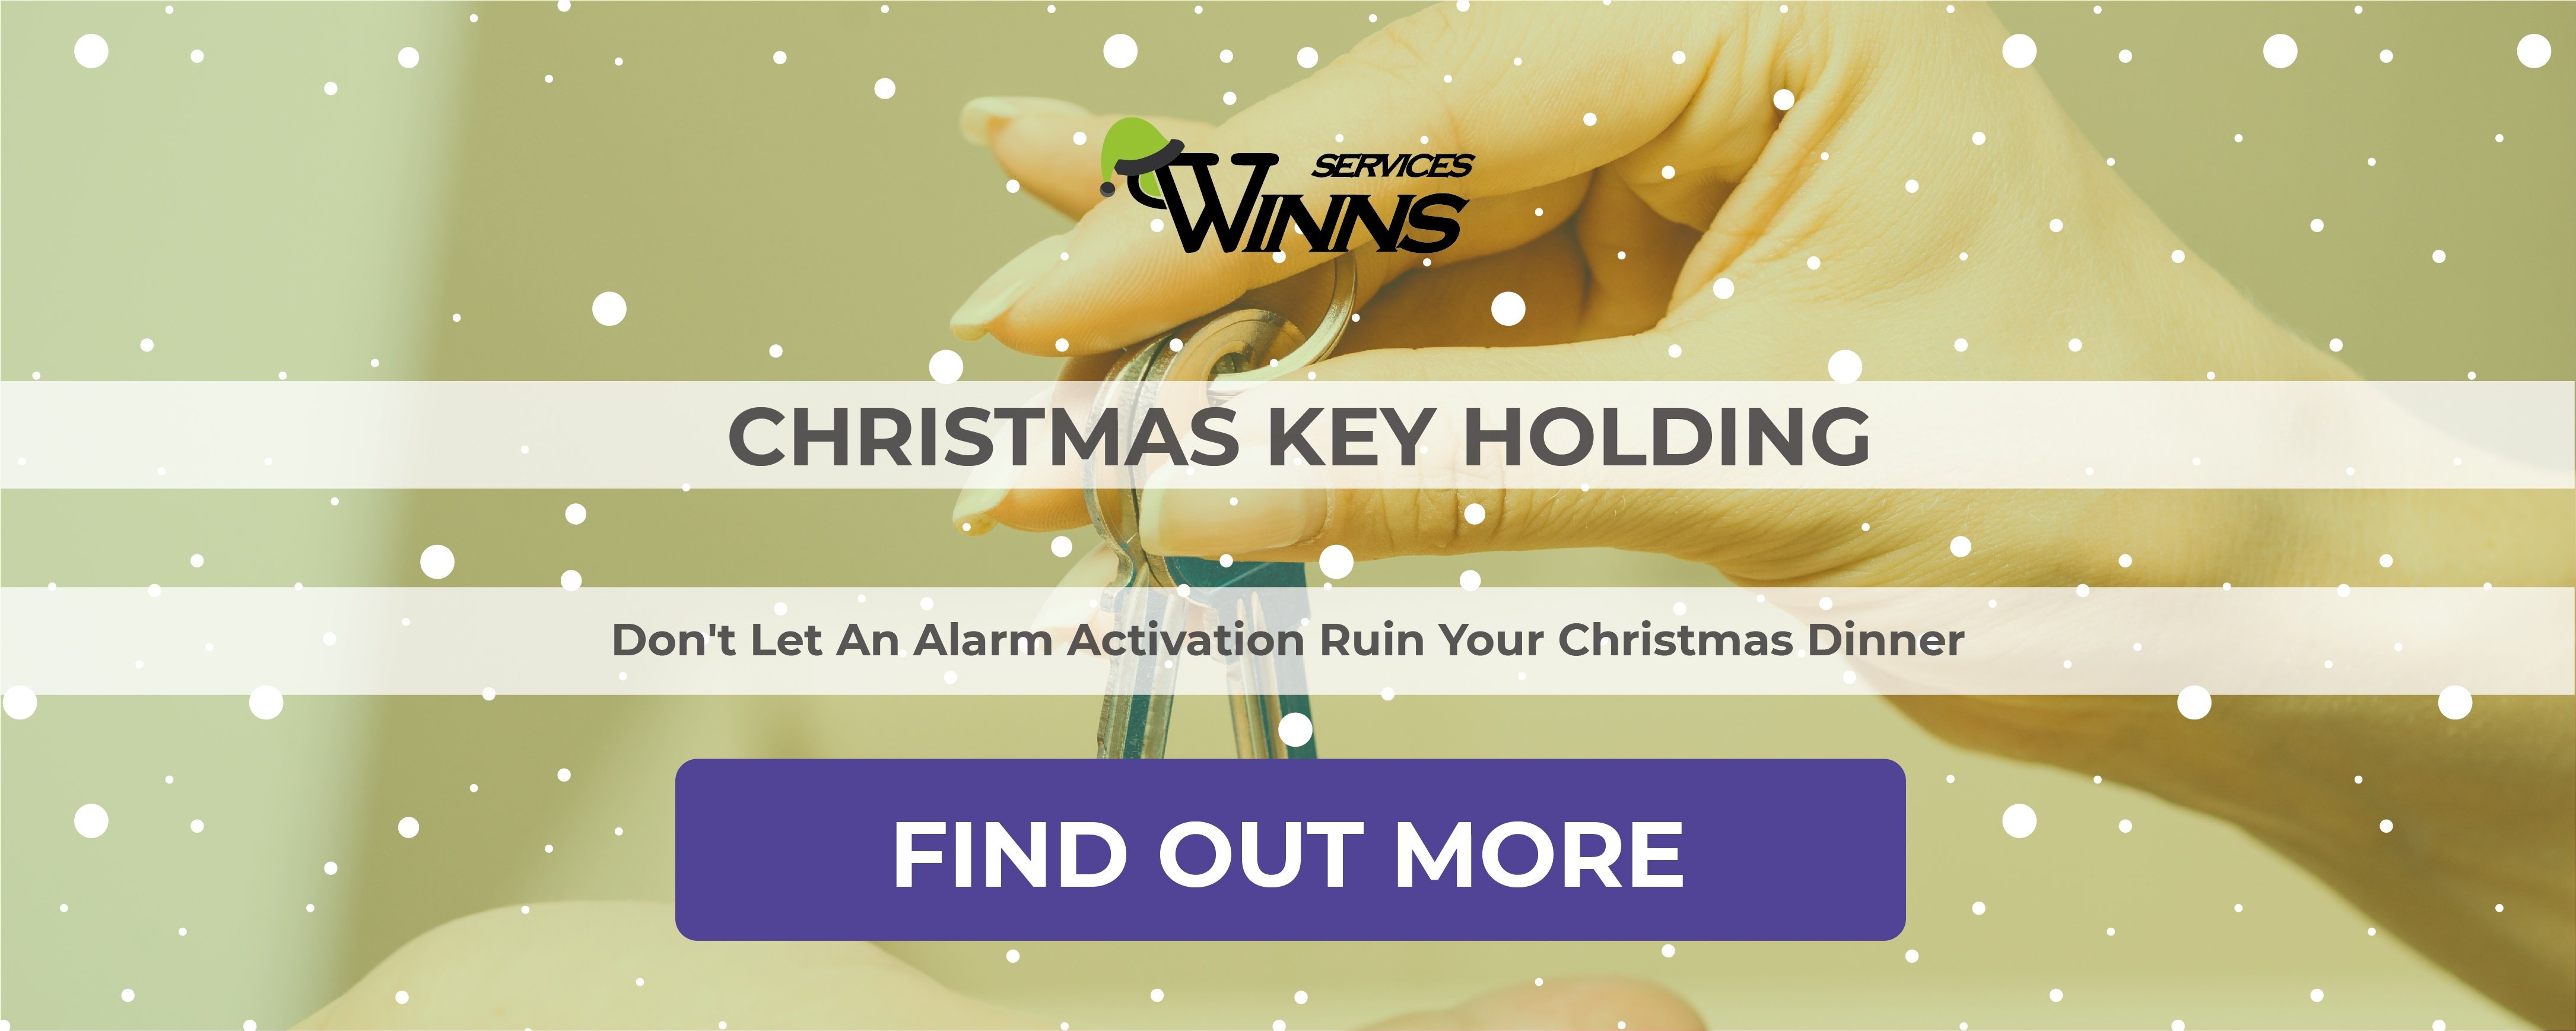 WINNS Christmas Security - Key Holding